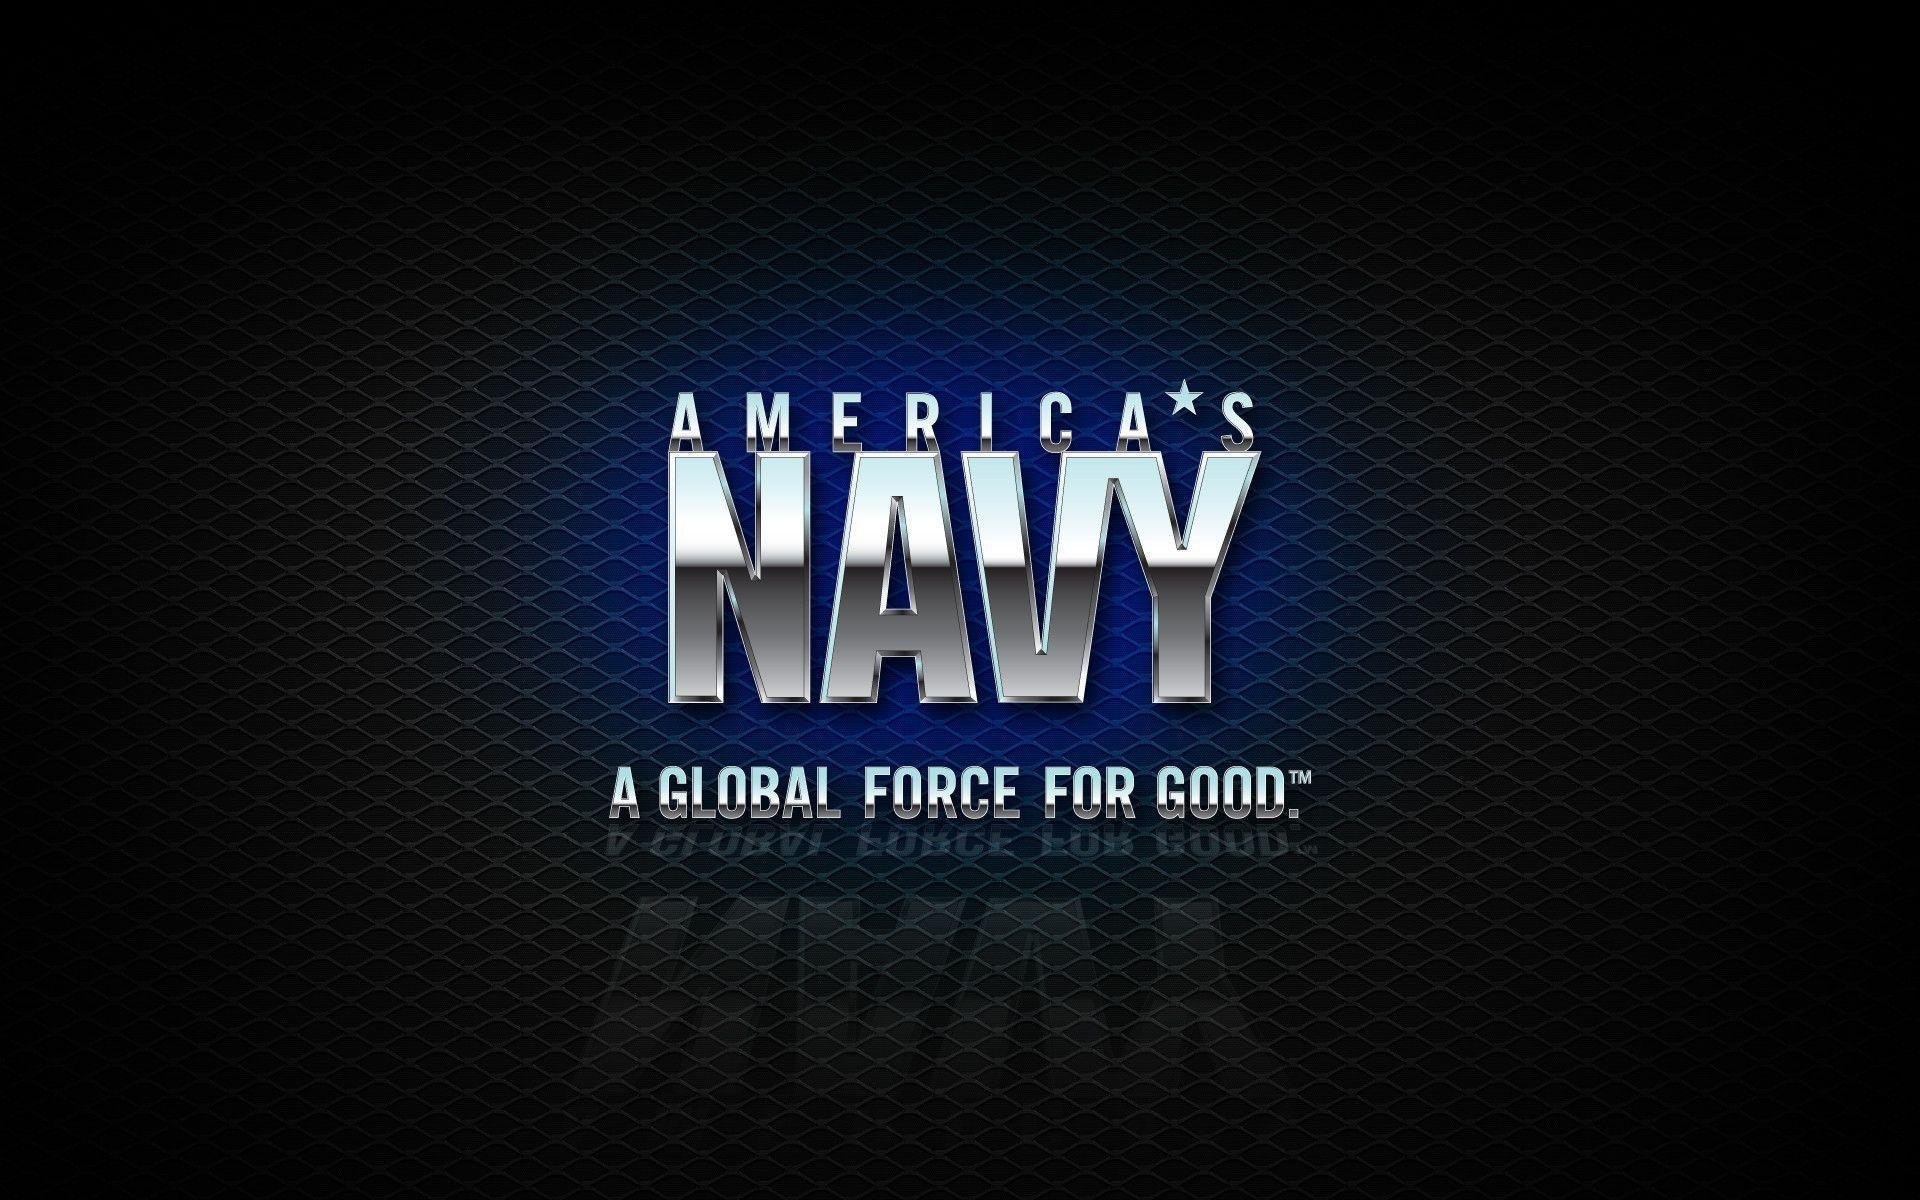 us navy screen savers